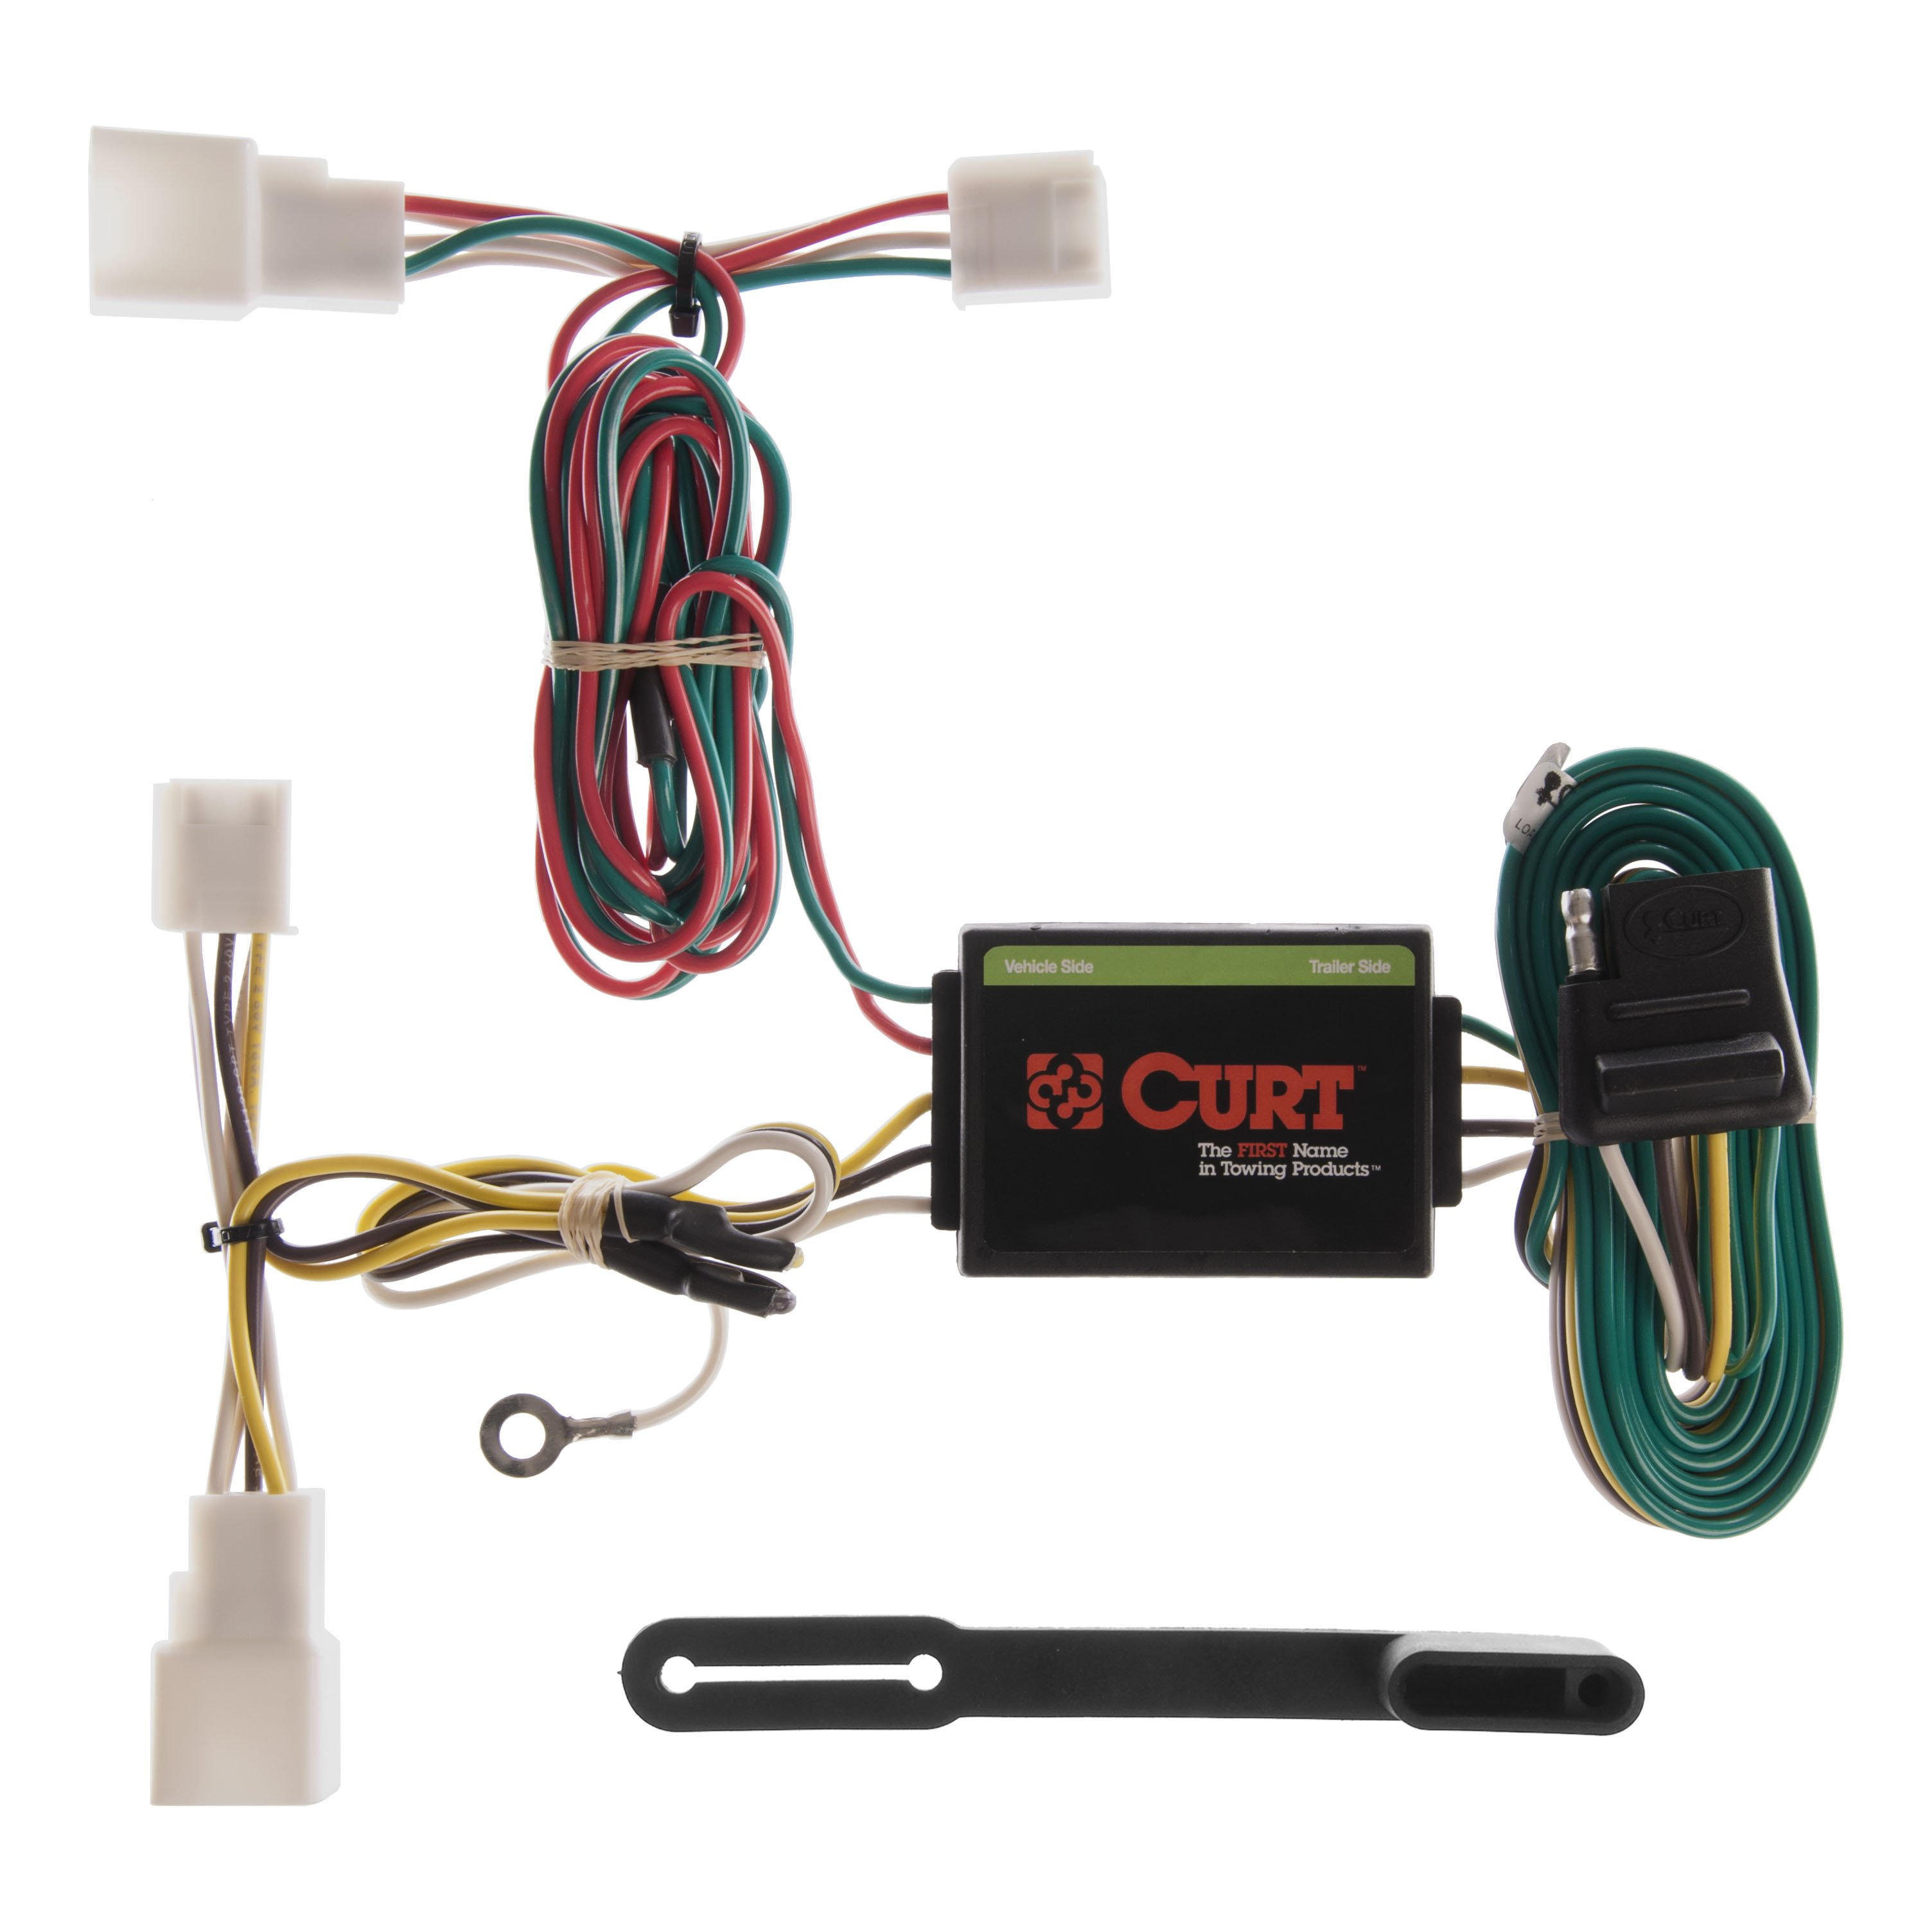 Toyota Camry Trailer Wiring Harness : Curt custom vehicle to trailer wiring harness for